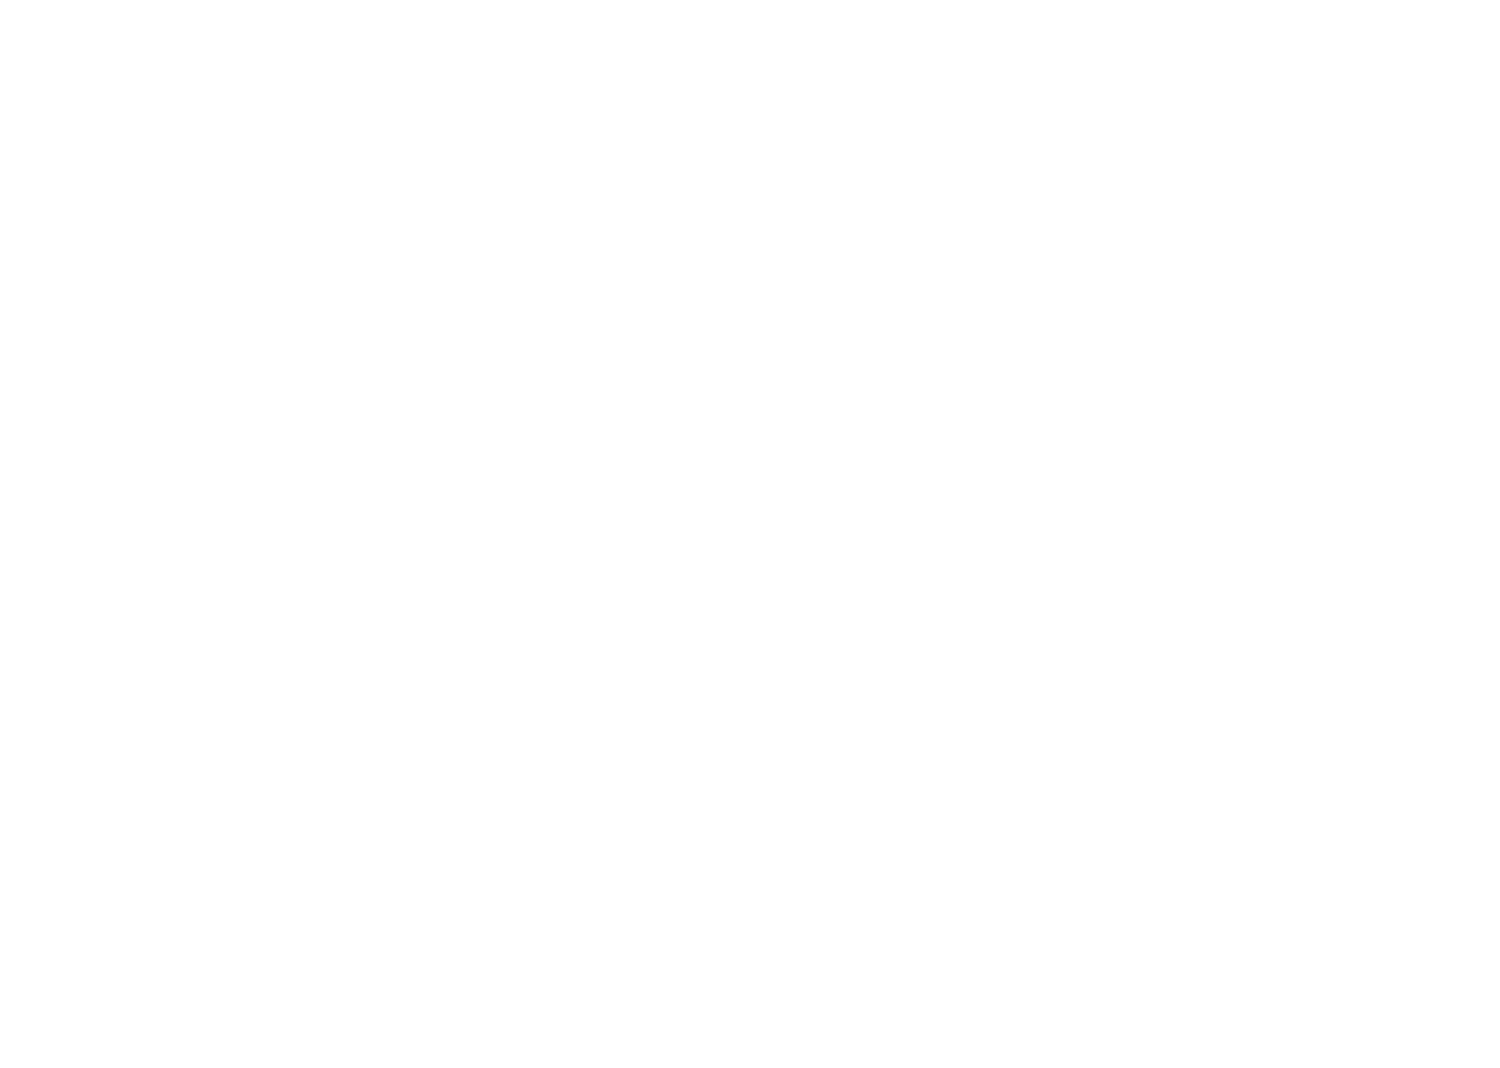 United Expats of the Netherlands